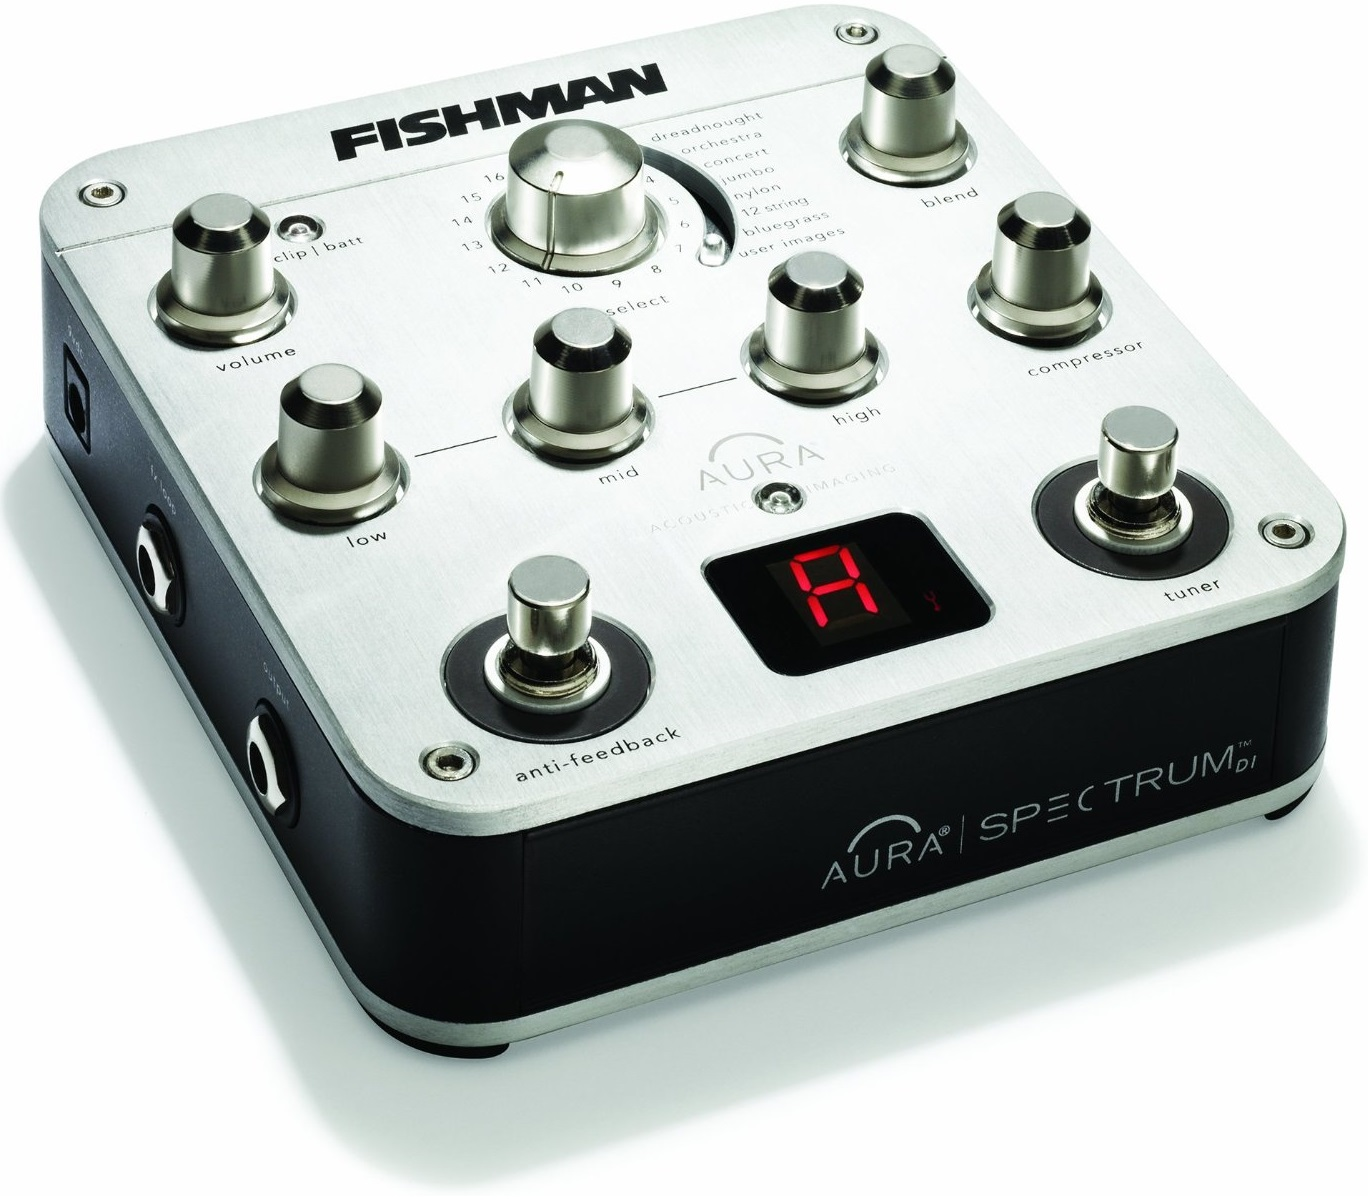 Best Guitar Pedals For Acoustic : 12 best pedals and preamps for the acoustic guitar ~ Vivirlamusica.com Haus und Dekorationen